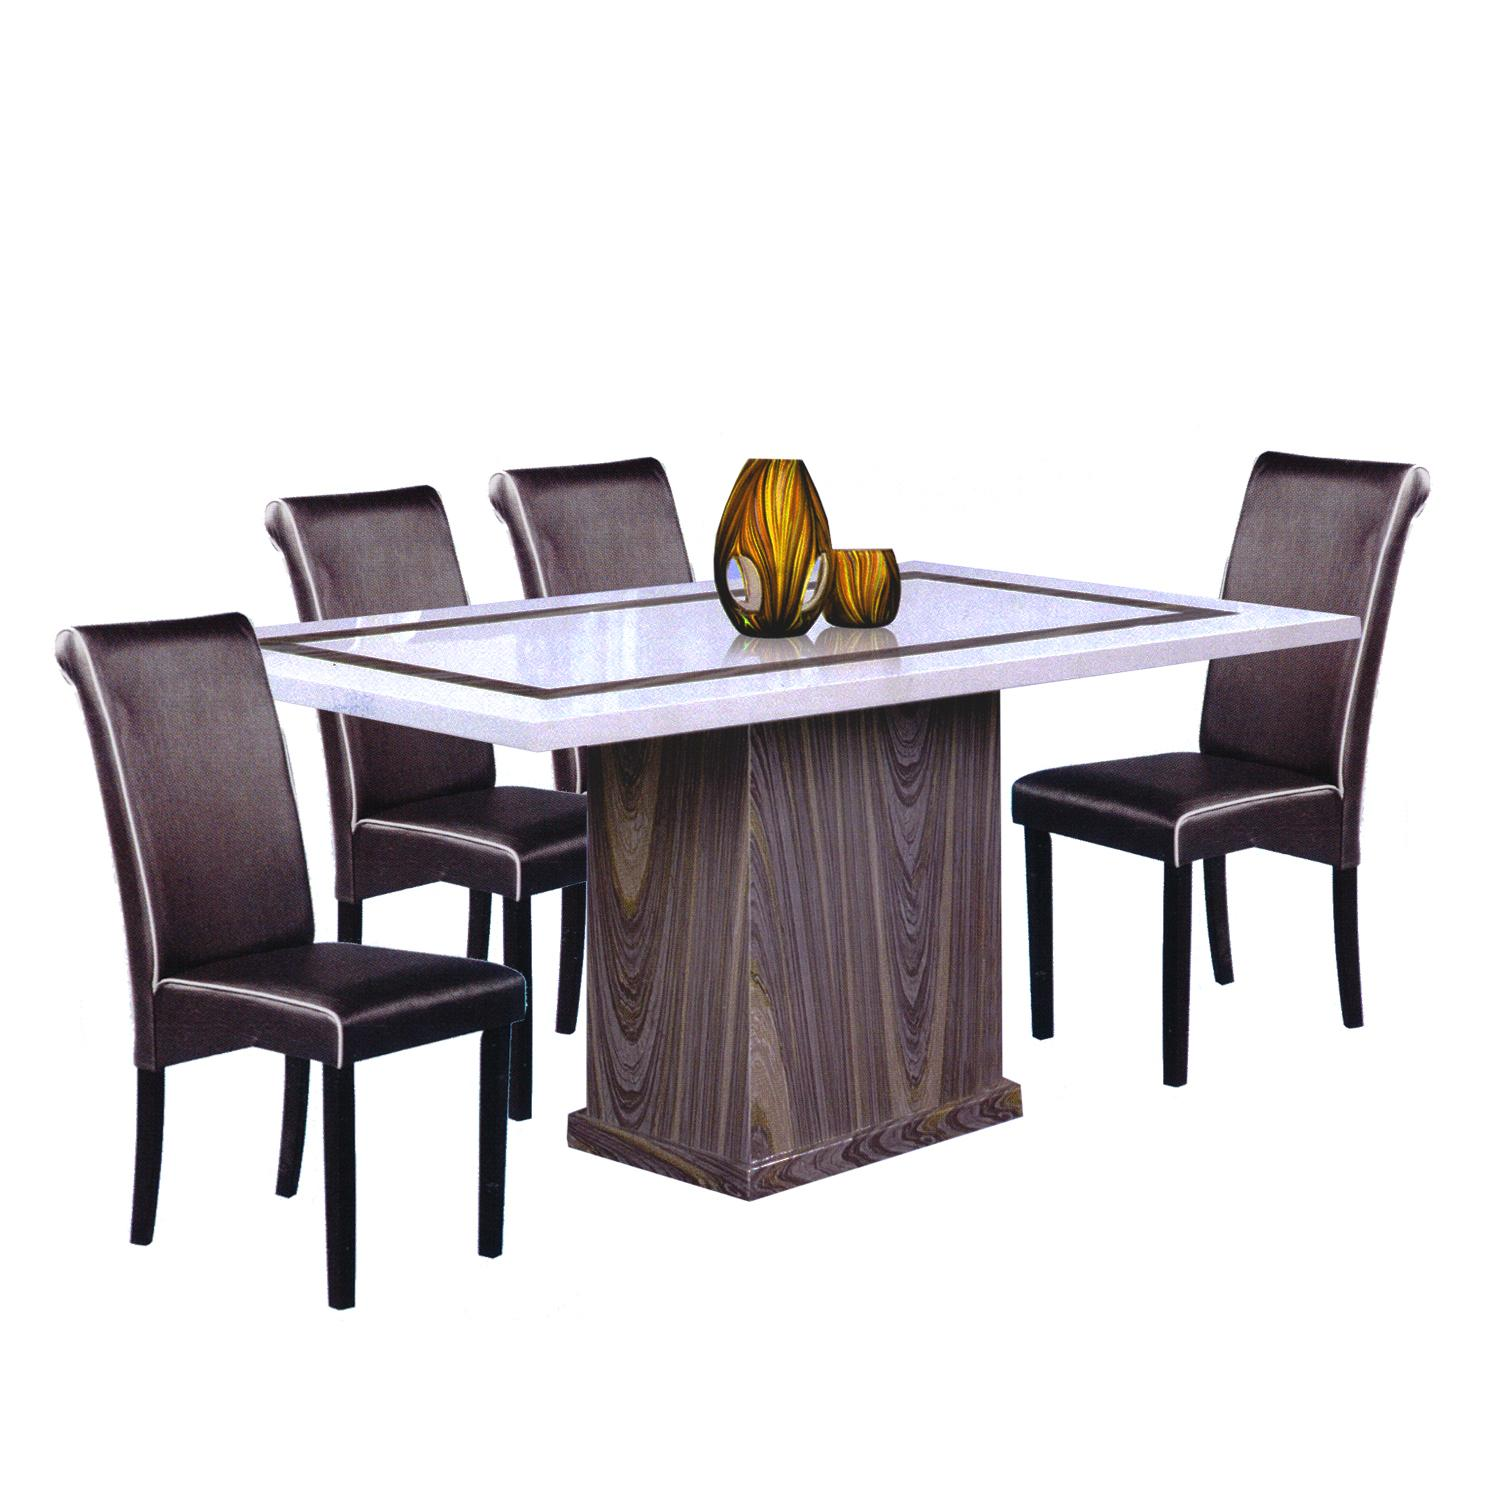 Yannic / Barry Marble Top 1+6 Dining Set By Living Mall